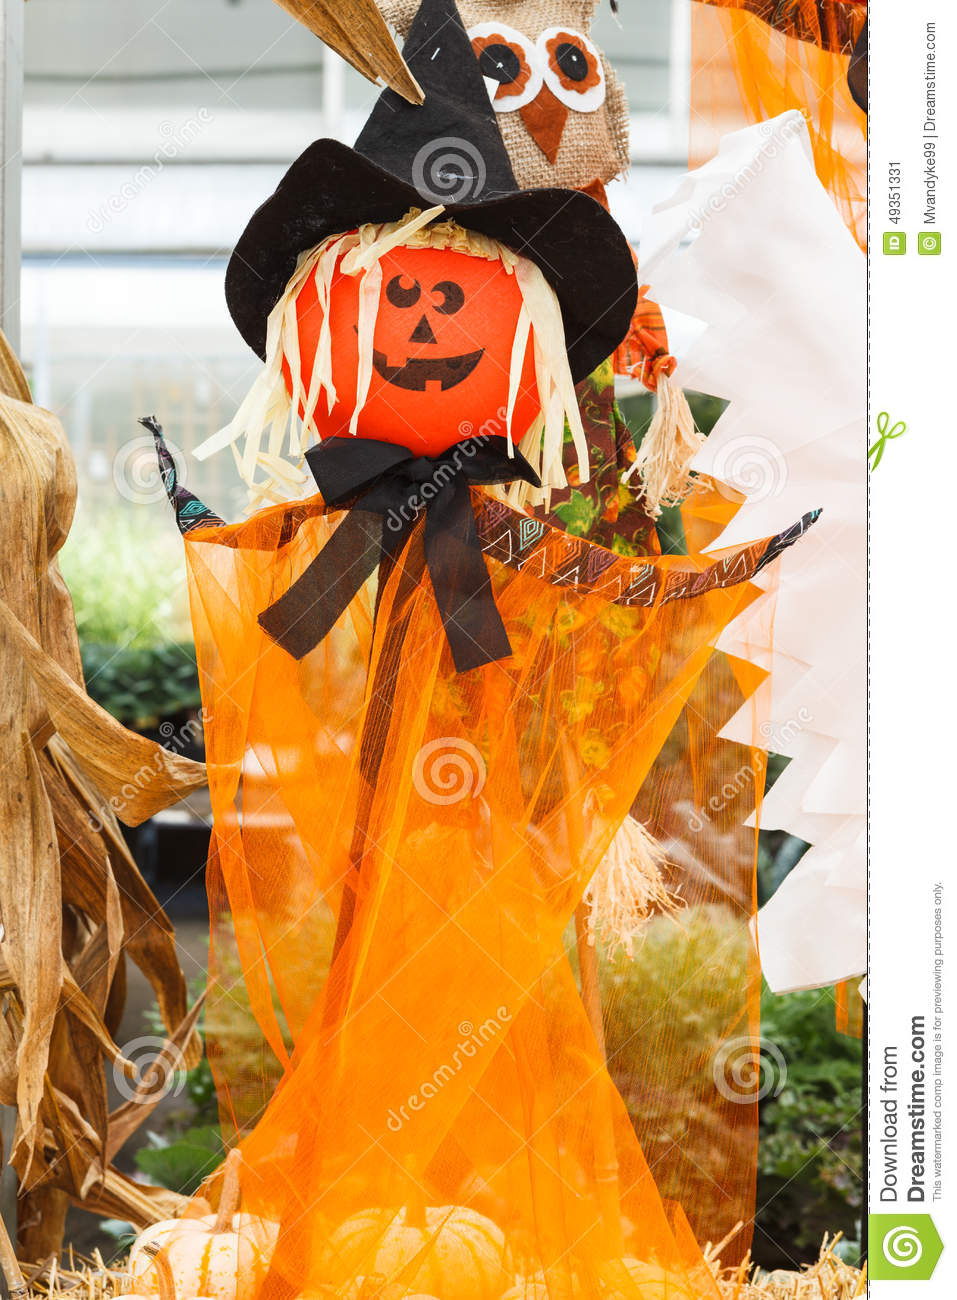 Witch Scarecrow Halloween Stock Photo - Image: 49351331